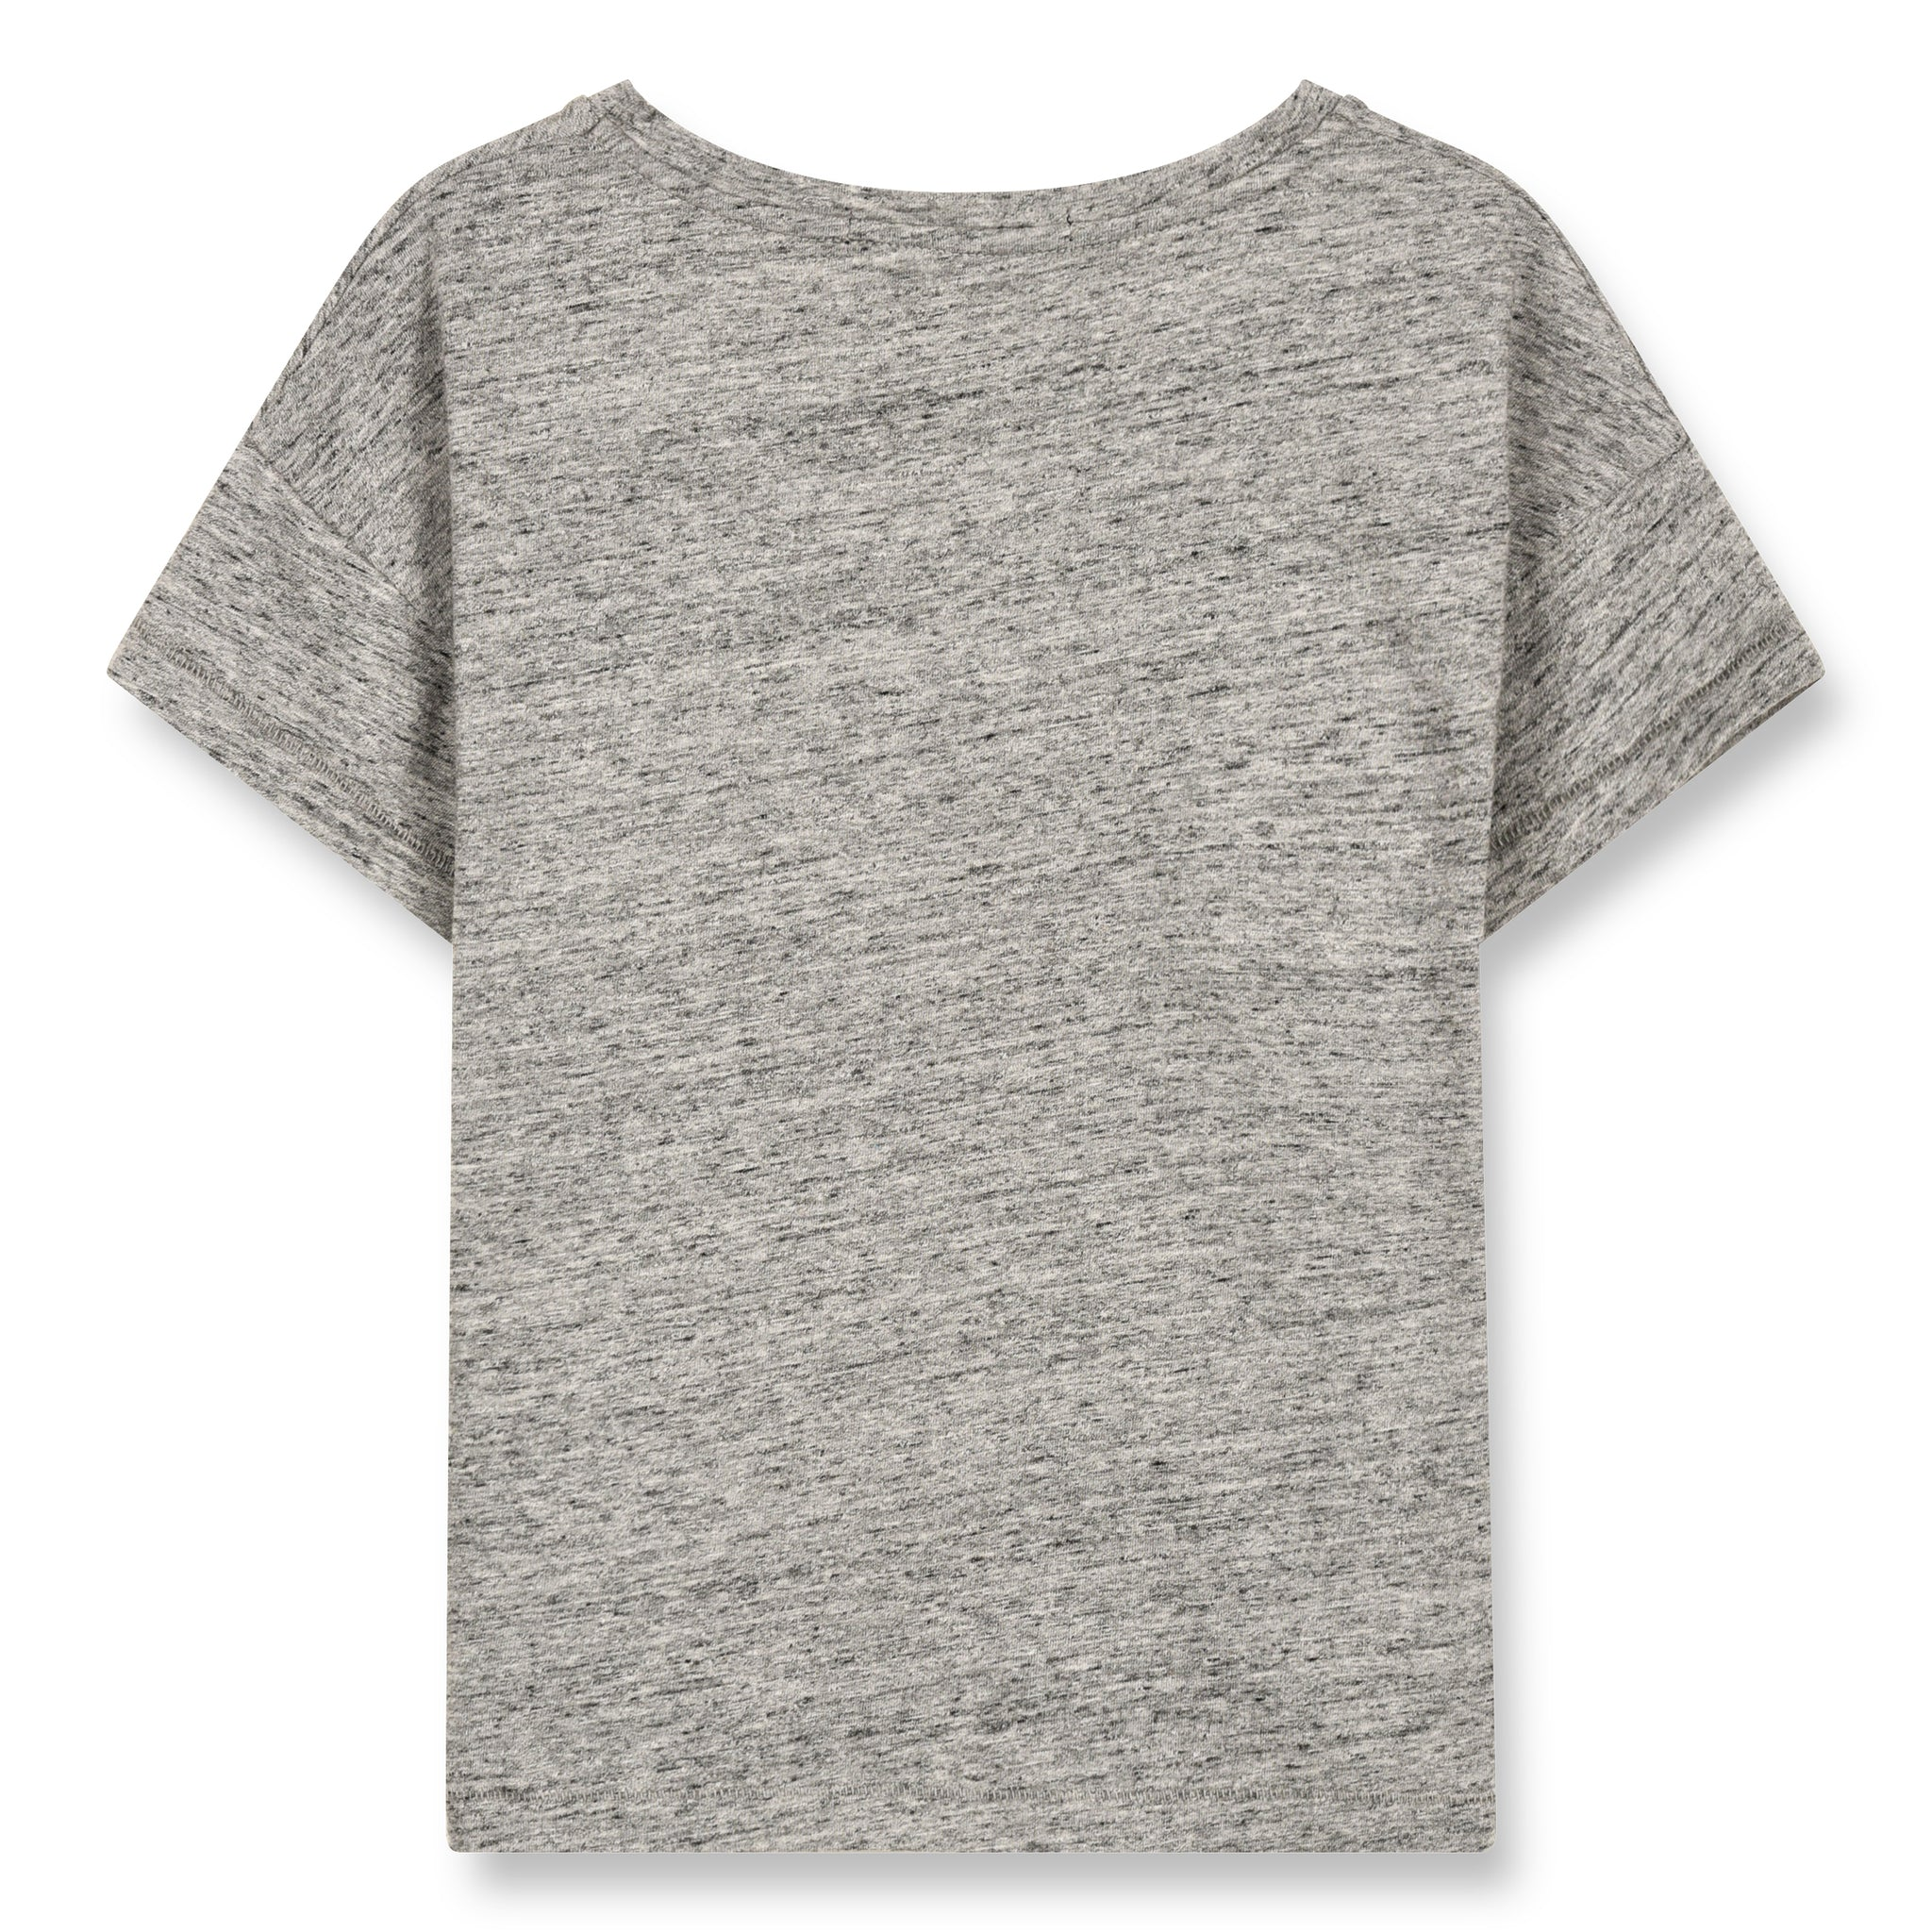 DROP Heather Grey Sparrow - Short Sleeve Cropped T-Shirt 2